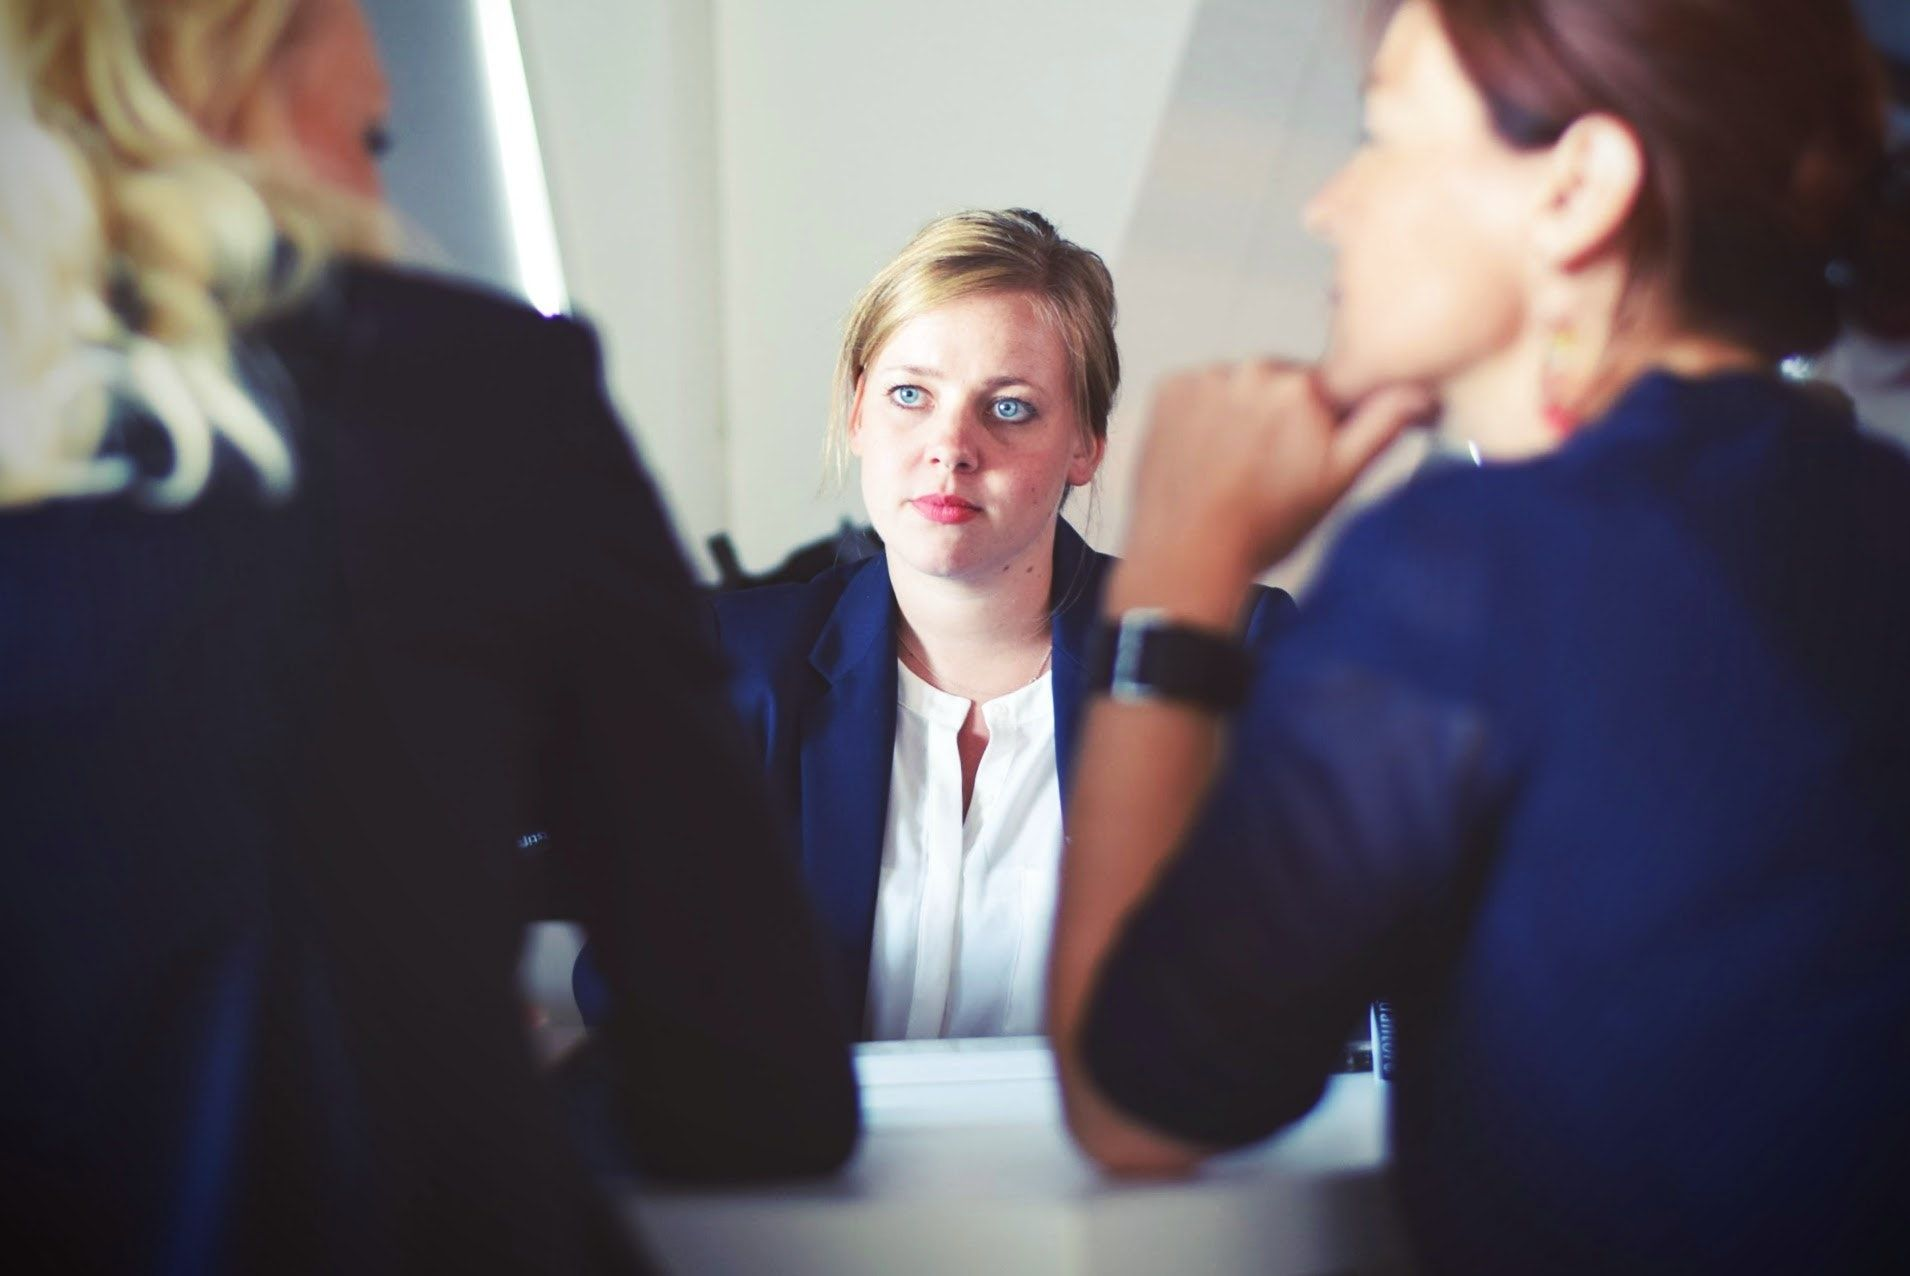 Human Resources decisions require high analysis